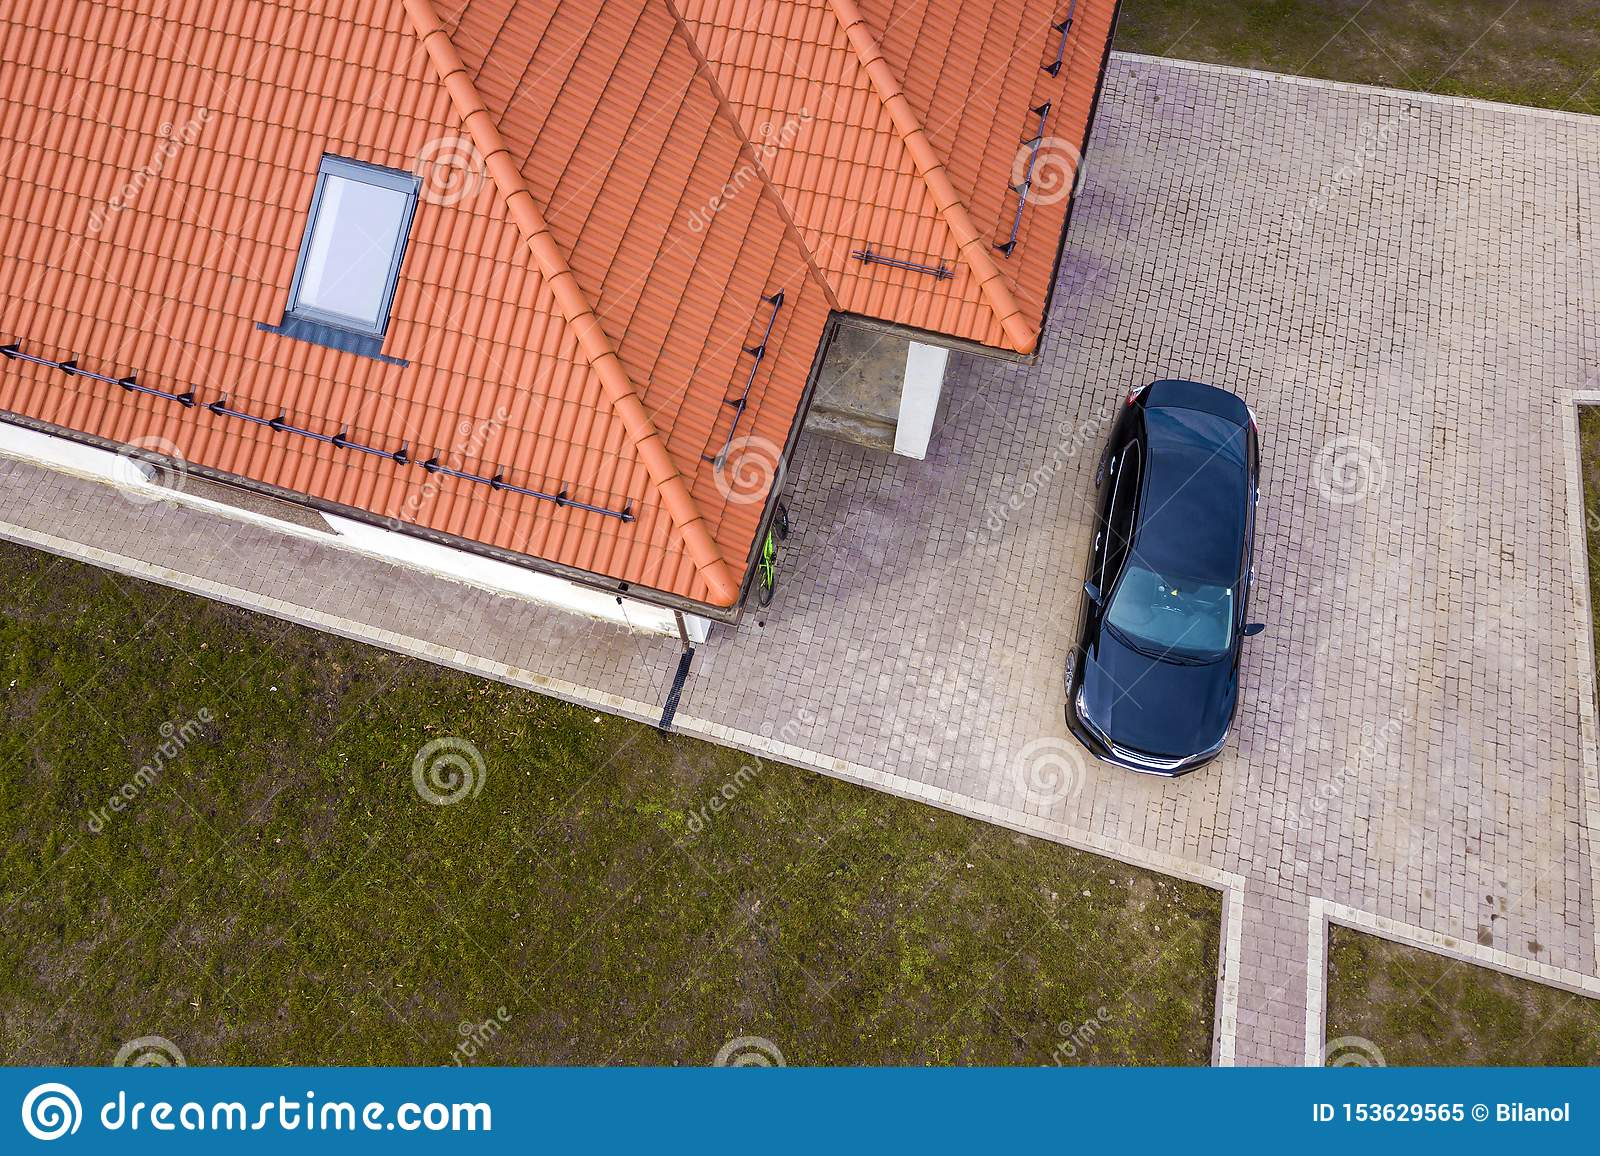 Aerial top view of house metal shingle roof with attic window and black car on paved yard